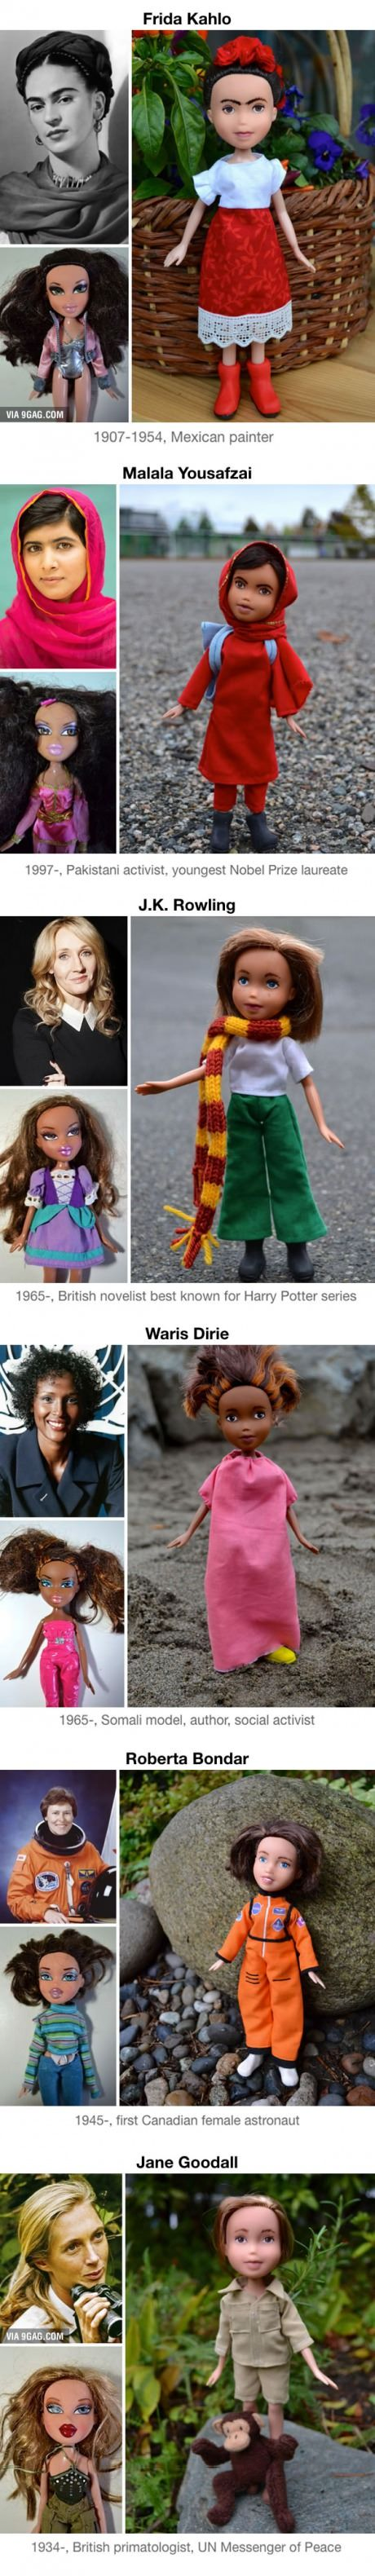 Artist Removes Make-Up From Hollywood And Disney Dolls To Turn Them Into Inspiring Real-Life Women